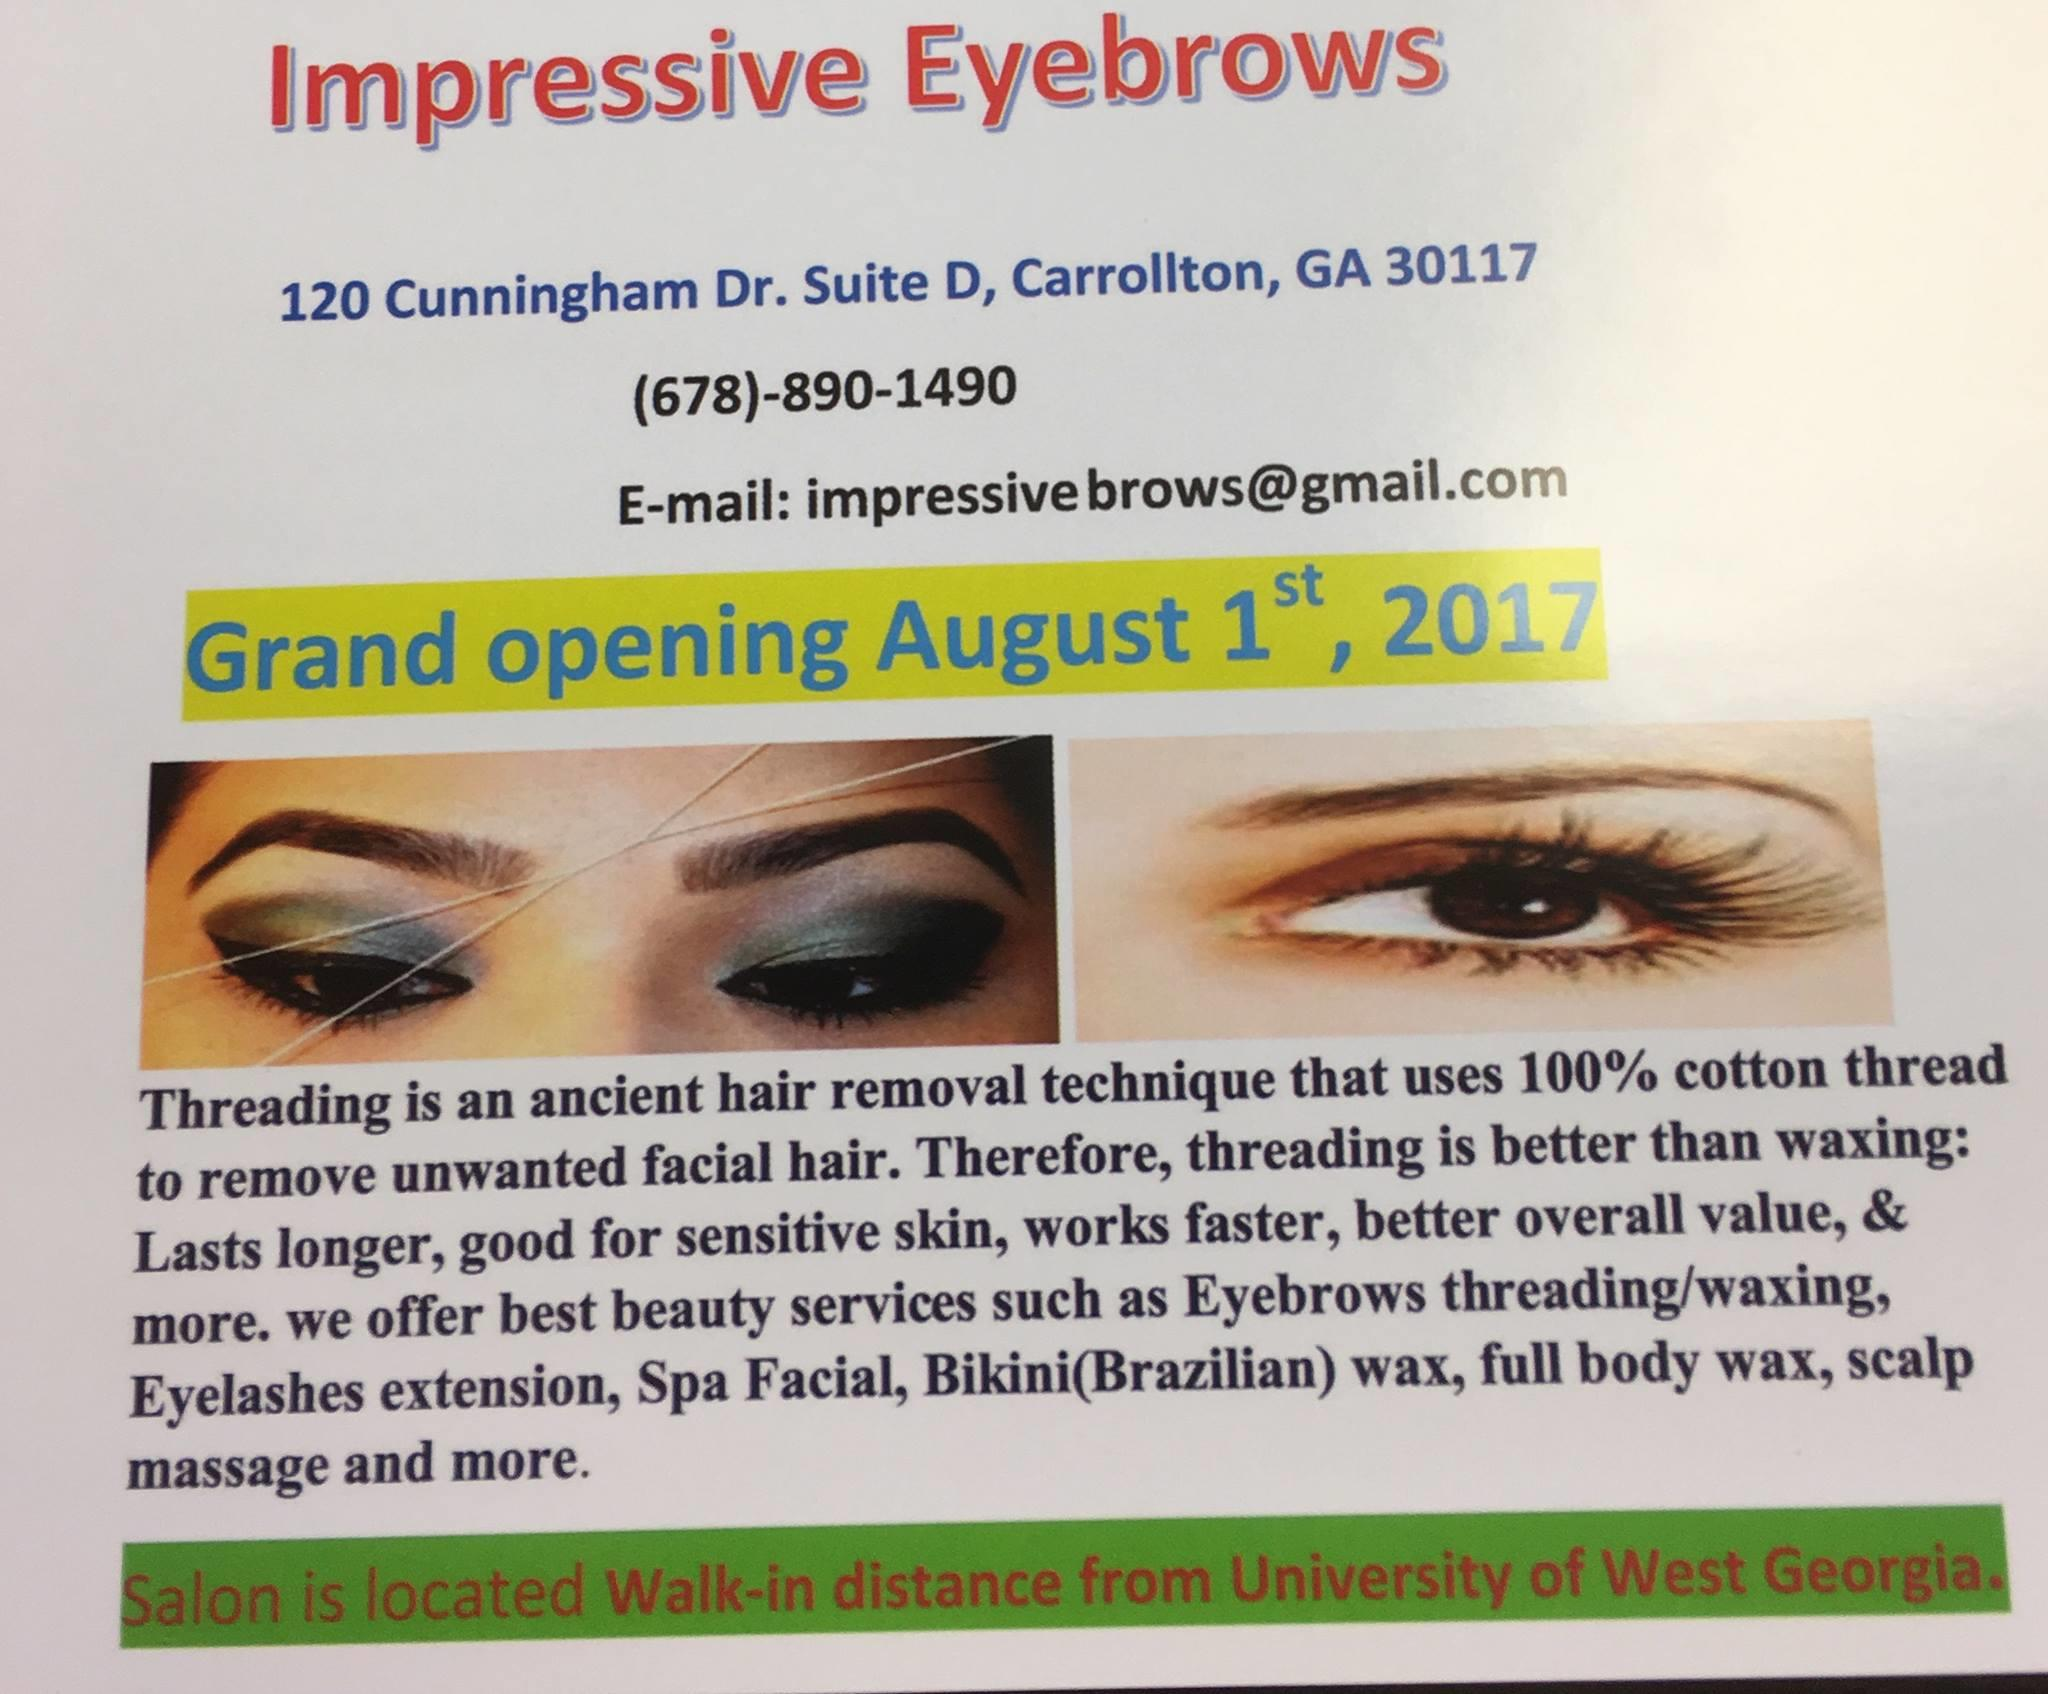 Impressive Eyebrows Threading/Waxing B (by the University of West Georgia) image 2